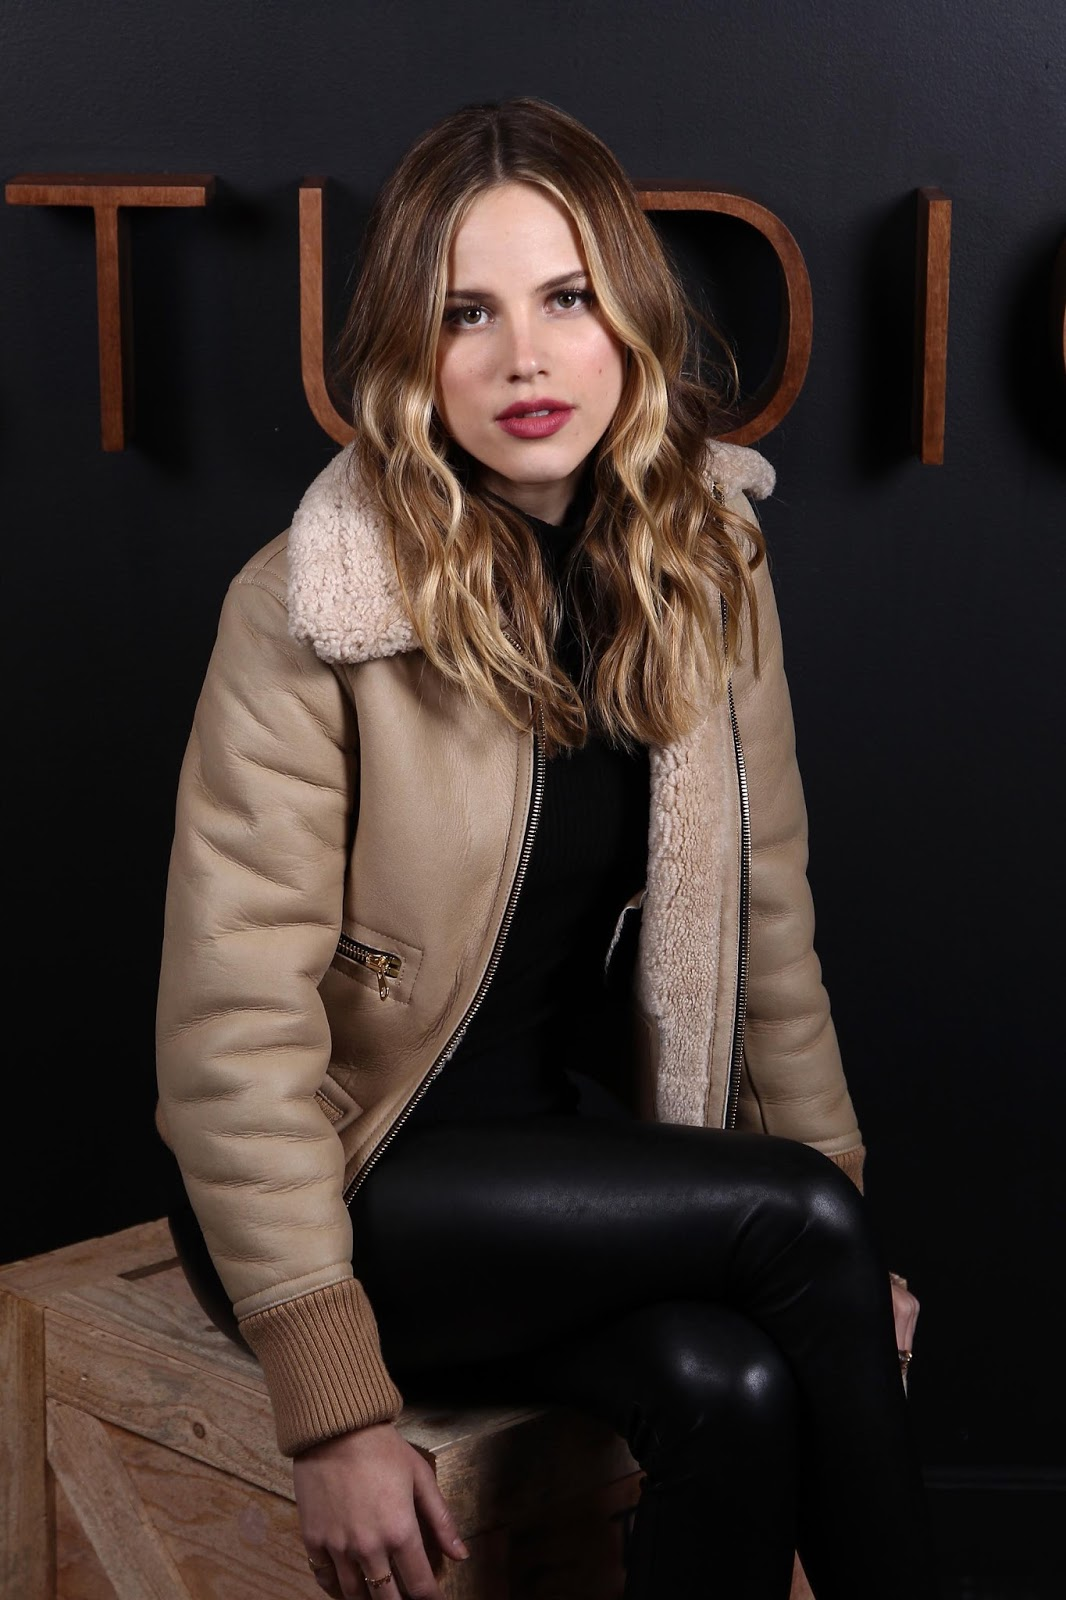 Halston Sage Nude Photos 16